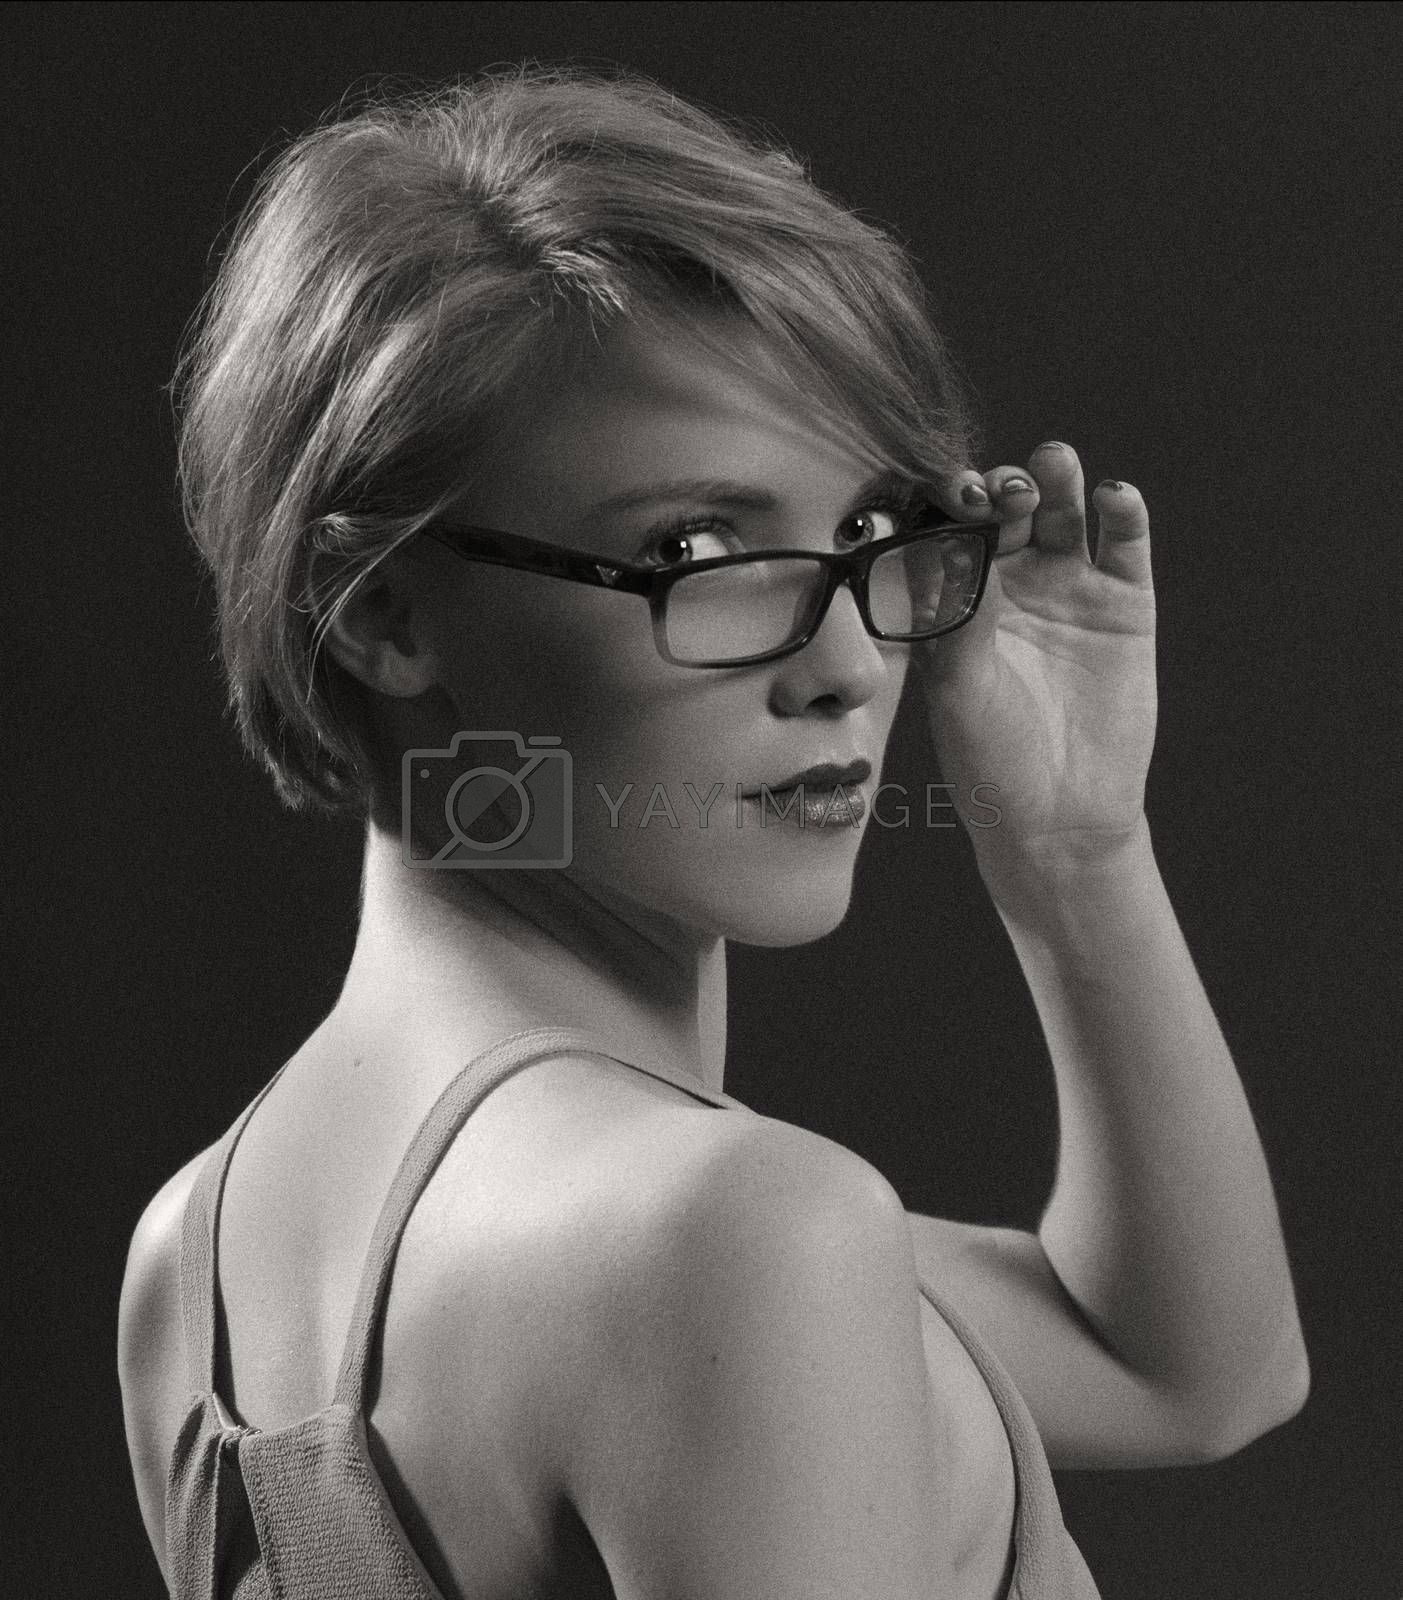 Pretty Girl with Glasses